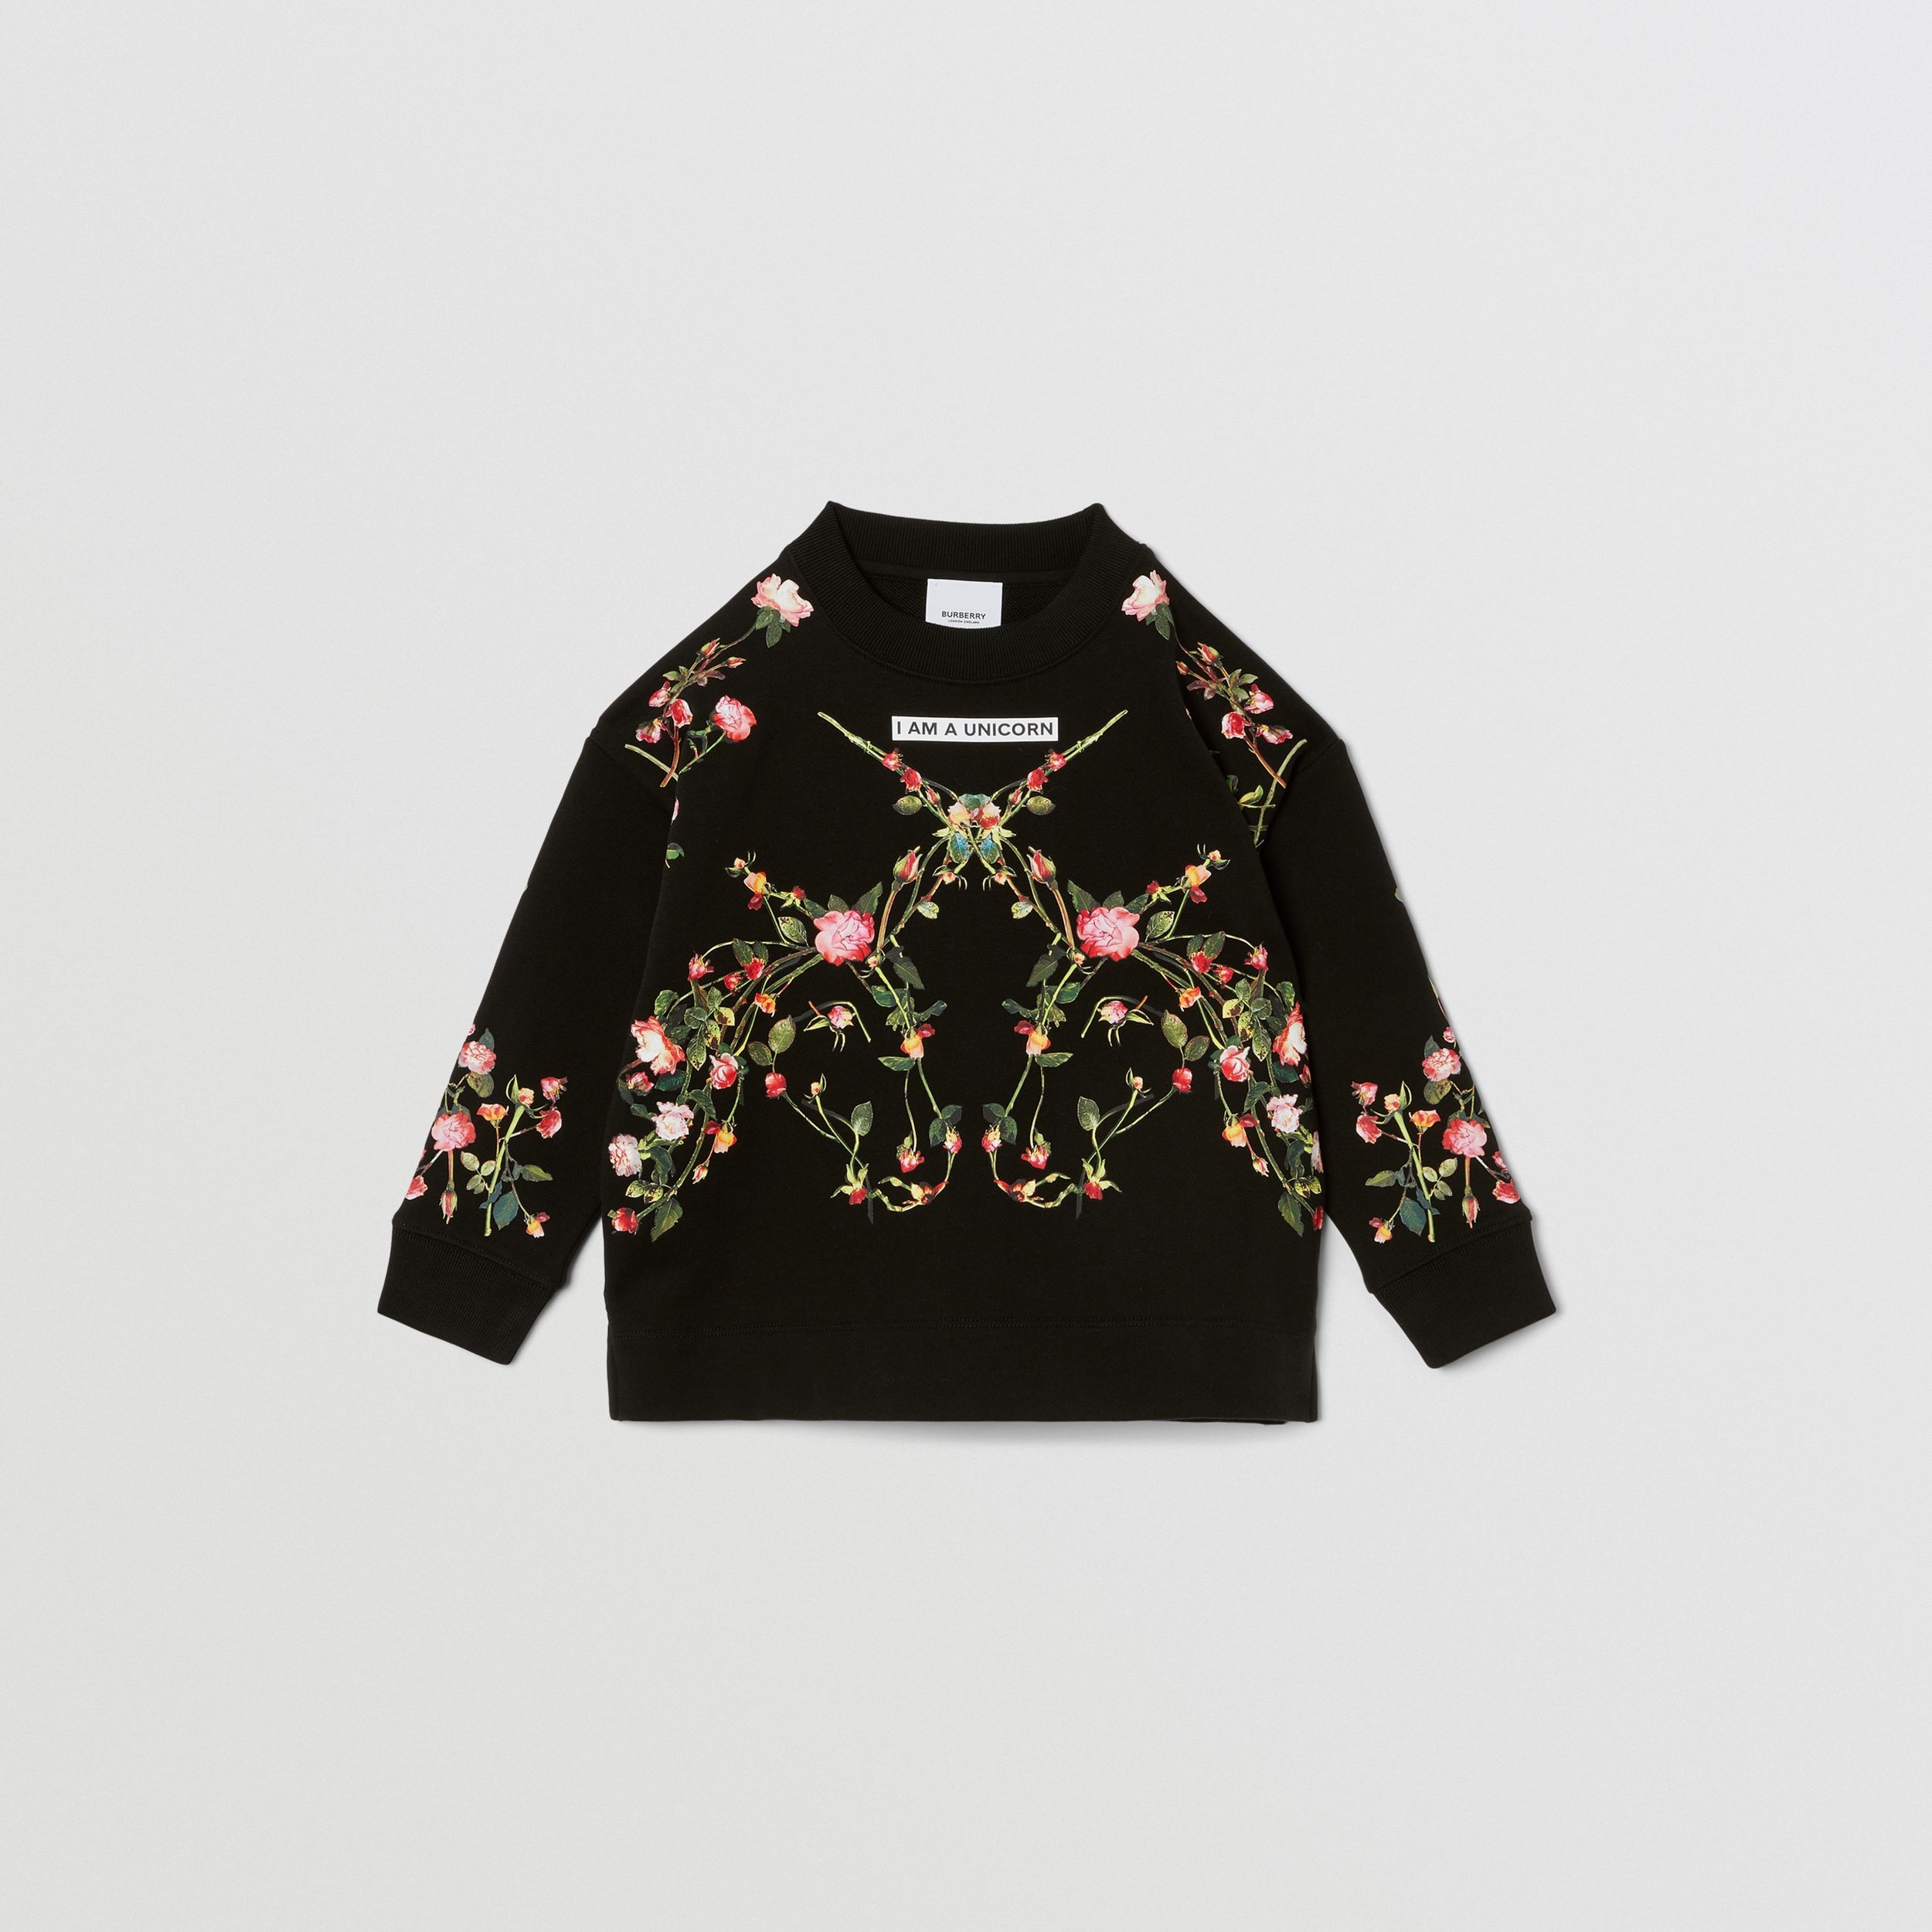 Montage Print Cotton Sweatshirt in Black | Burberry Australia - 1